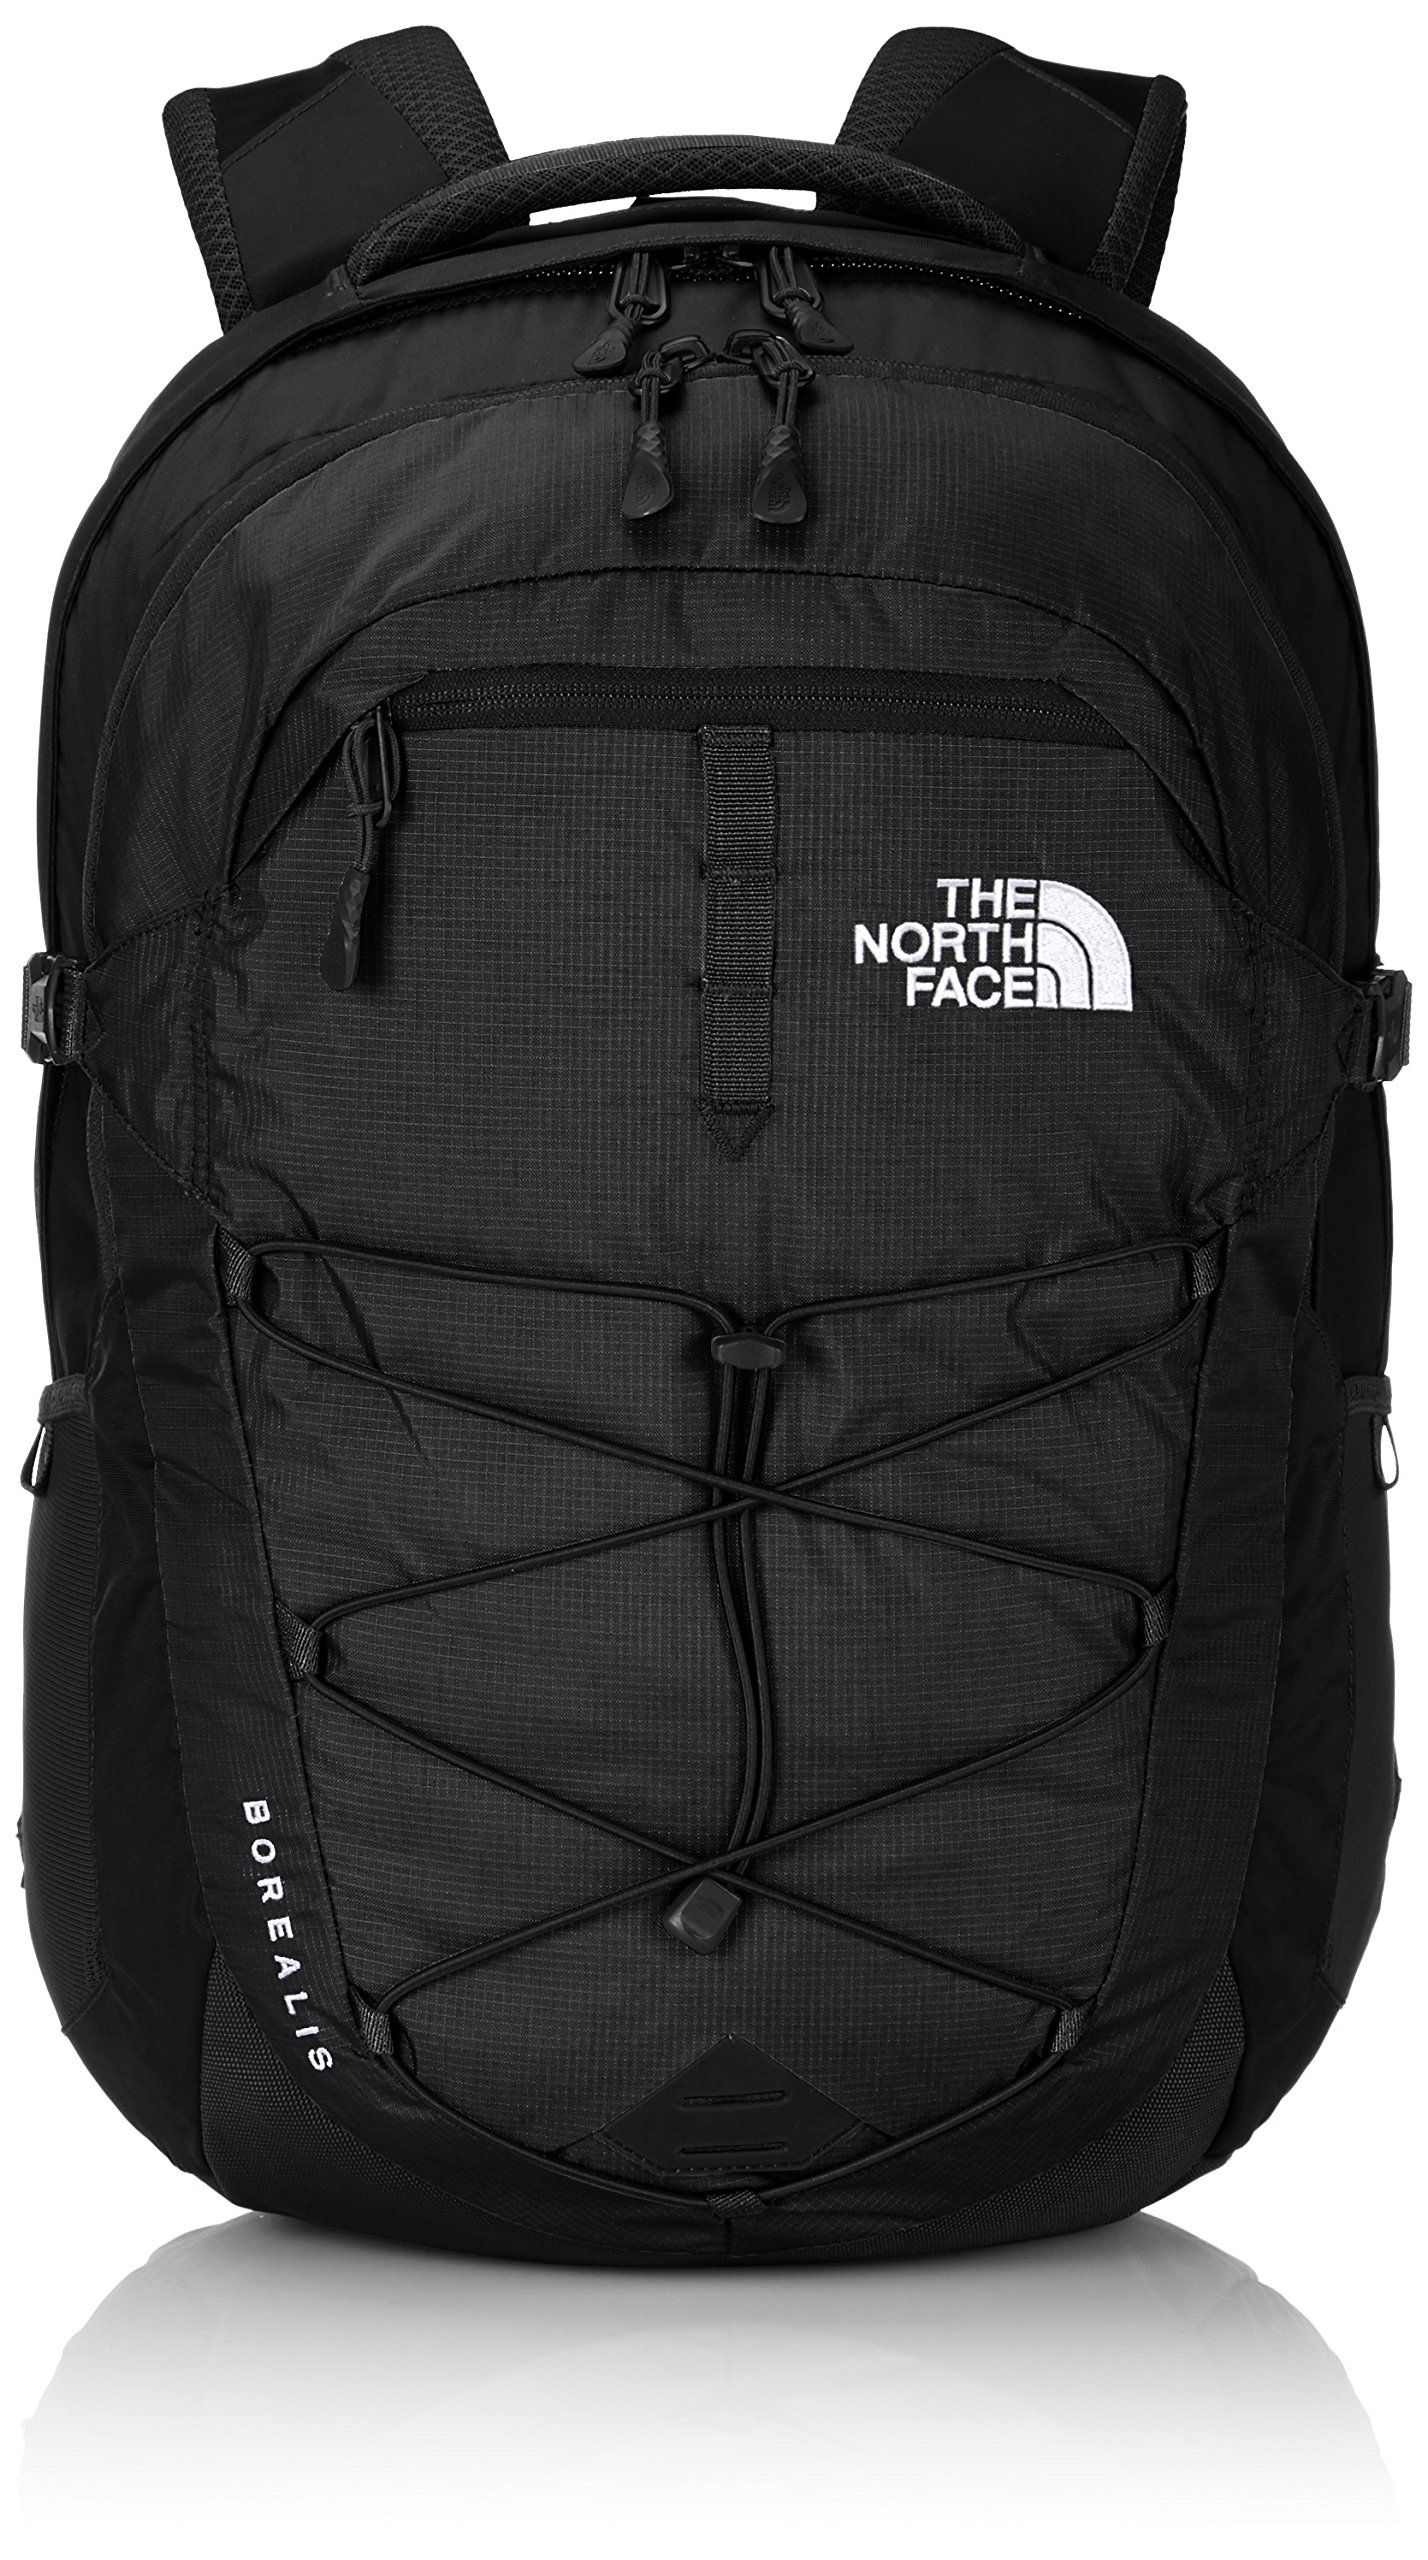 c0df3cfe7 The North Face Borealis Backpack TNF Black Size One Size | Fashions ...